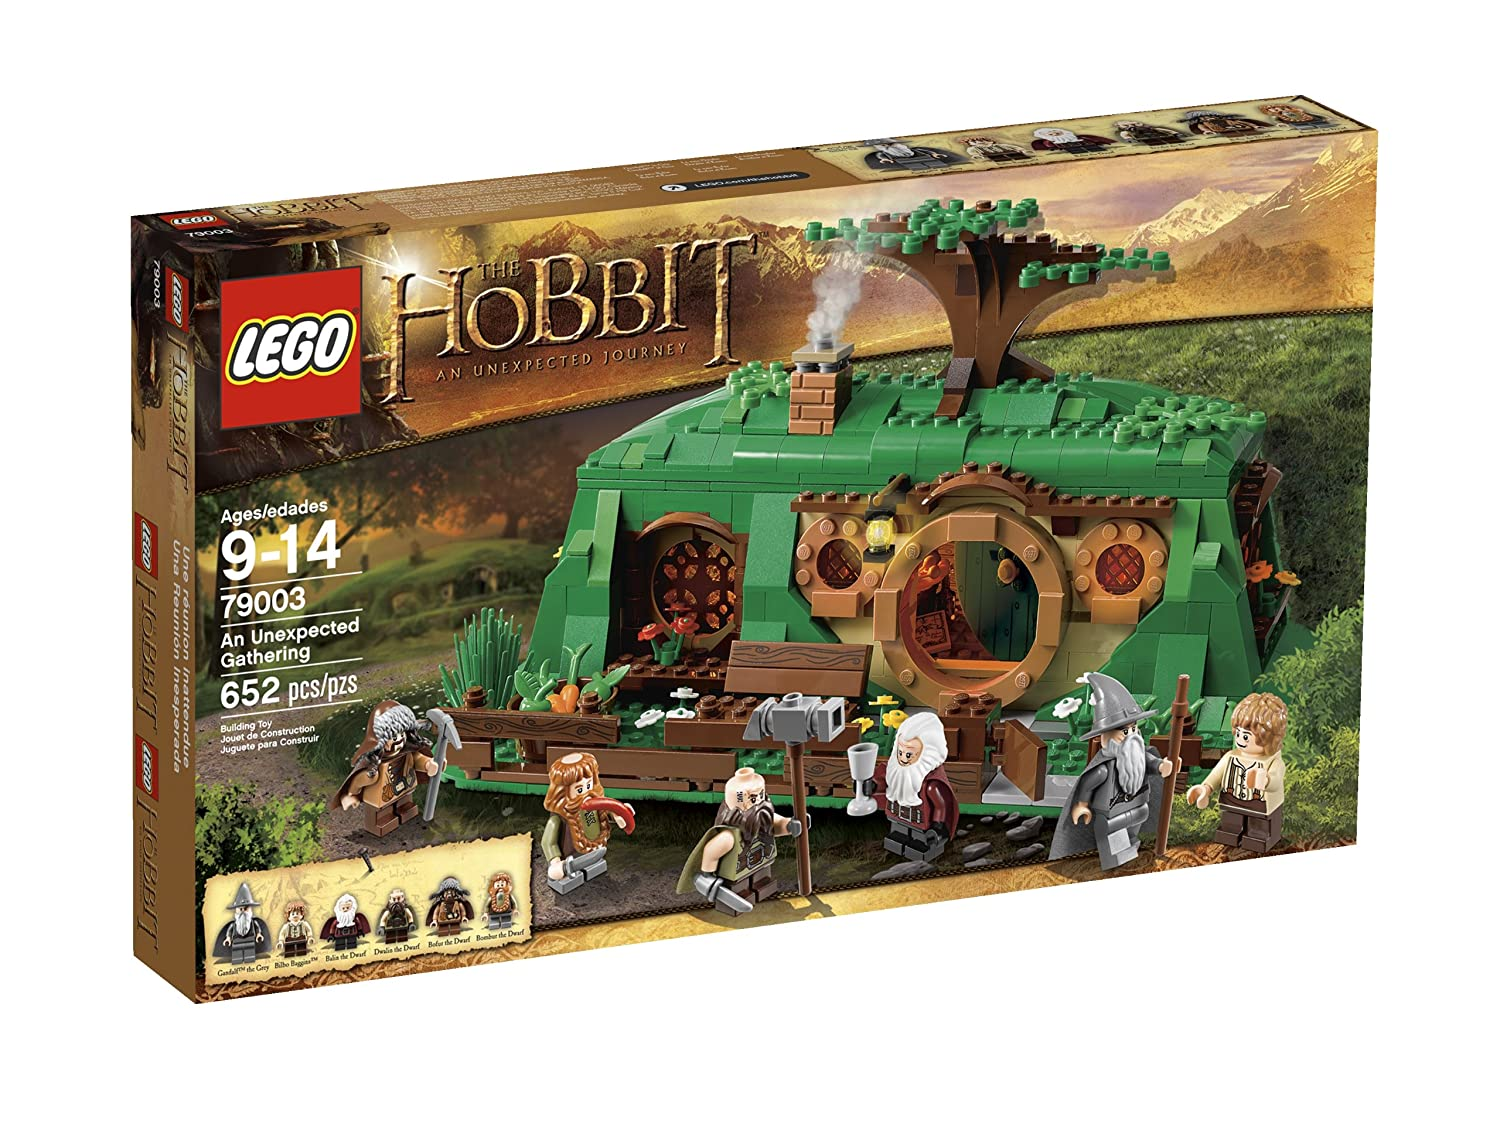 LEGO The Hobbit 79003 An Unexpected Gathering Includes 6 minifigures: Bilbo Baggins in Shire outfit, Gandalf the Grey, Balin the Dwarf, Dwalin the Dwarf, Bombur the Dwarf and Bofur the Dwarf, all with assorted weapons